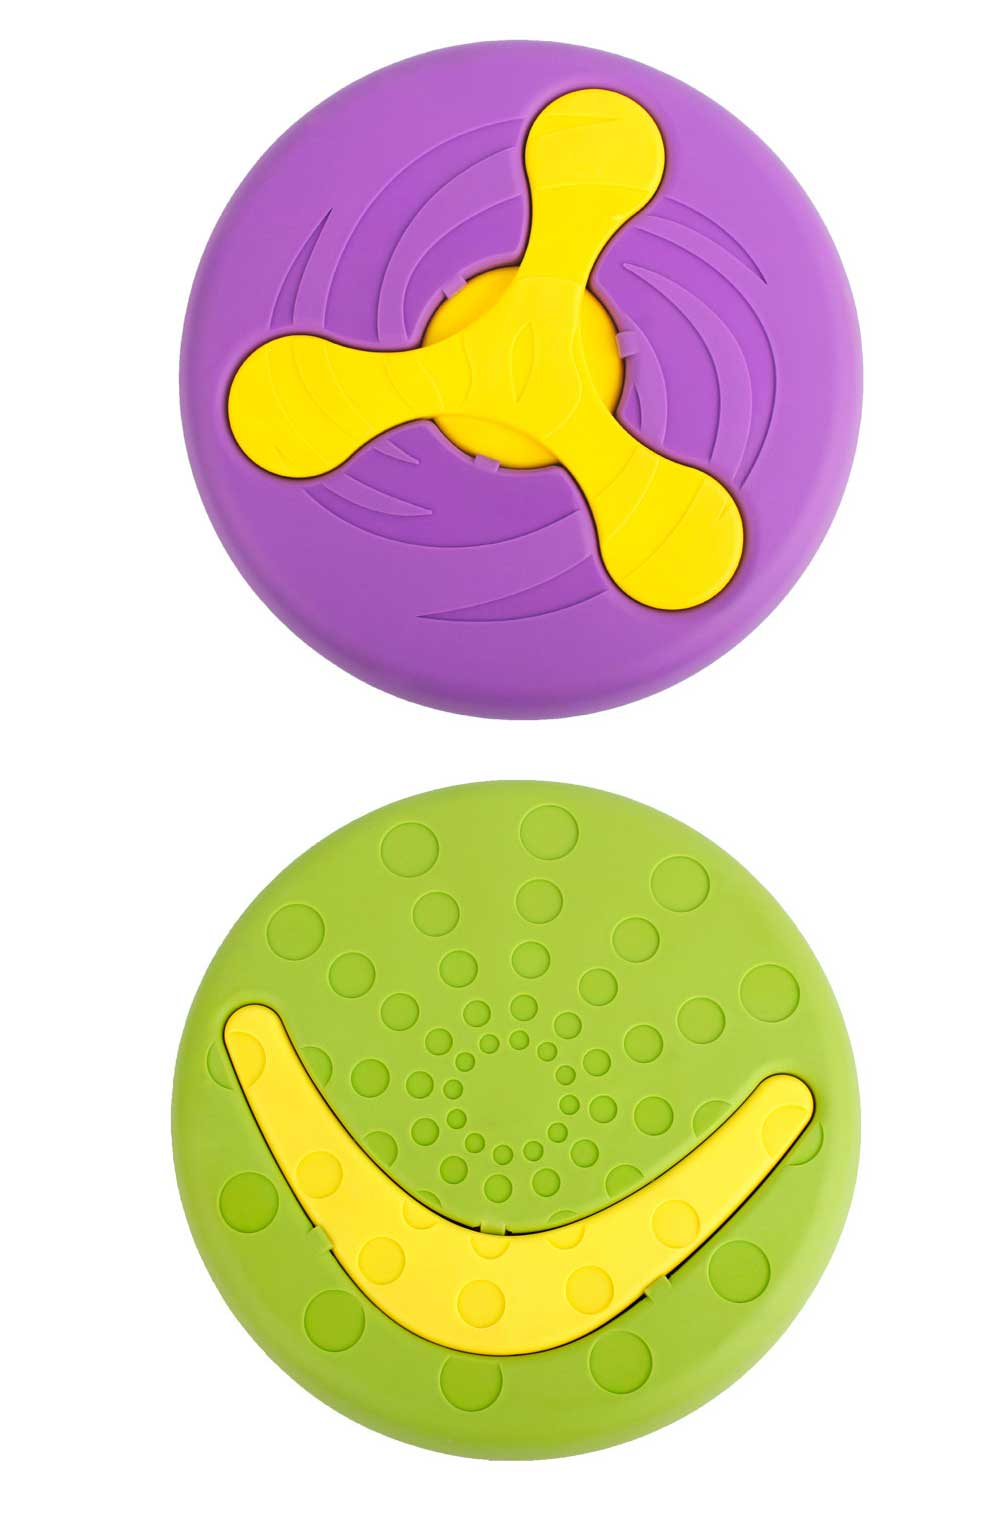 Creative Dog Frisbee, Bite Resistant Plastic Dog Frisbee Toy For Throwing Training, 2 Style 8